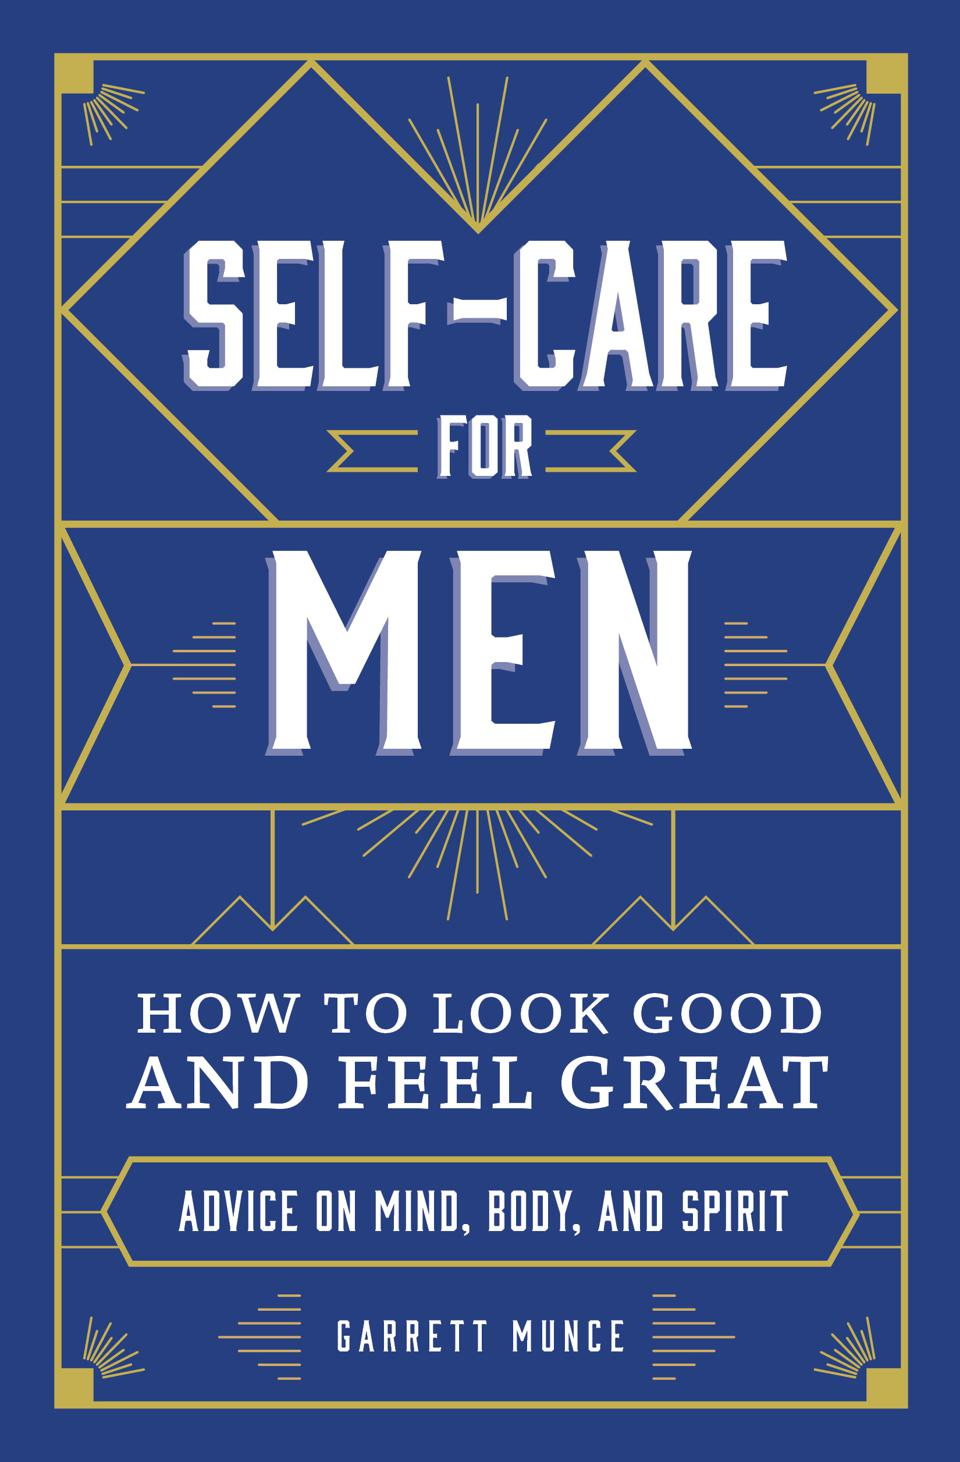 ″Self-Care for Men: How to Look Good and Feel Great″ book